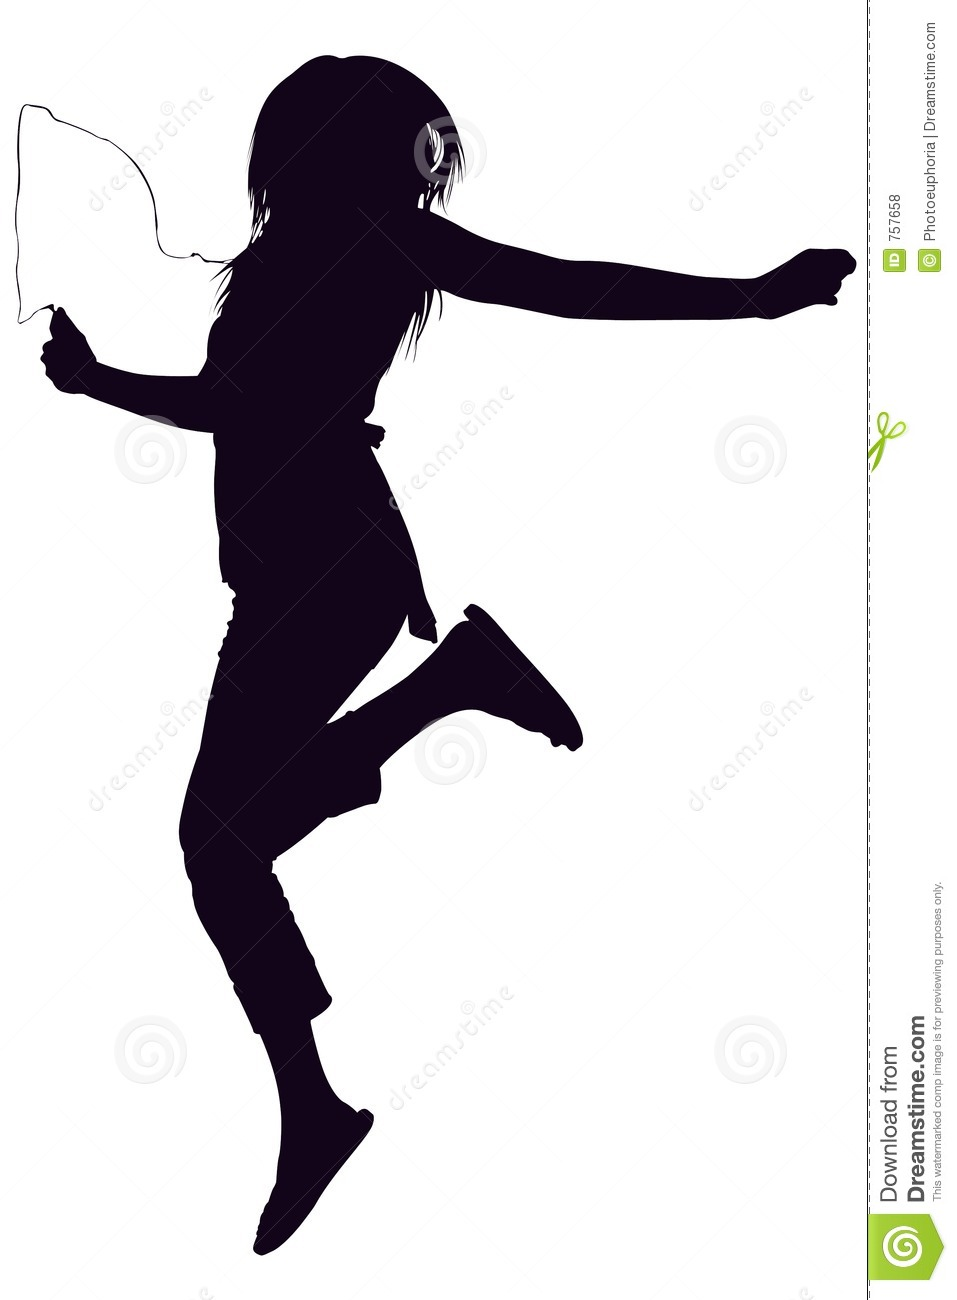 Free stock photos silhouette with clipping path of teen jumping